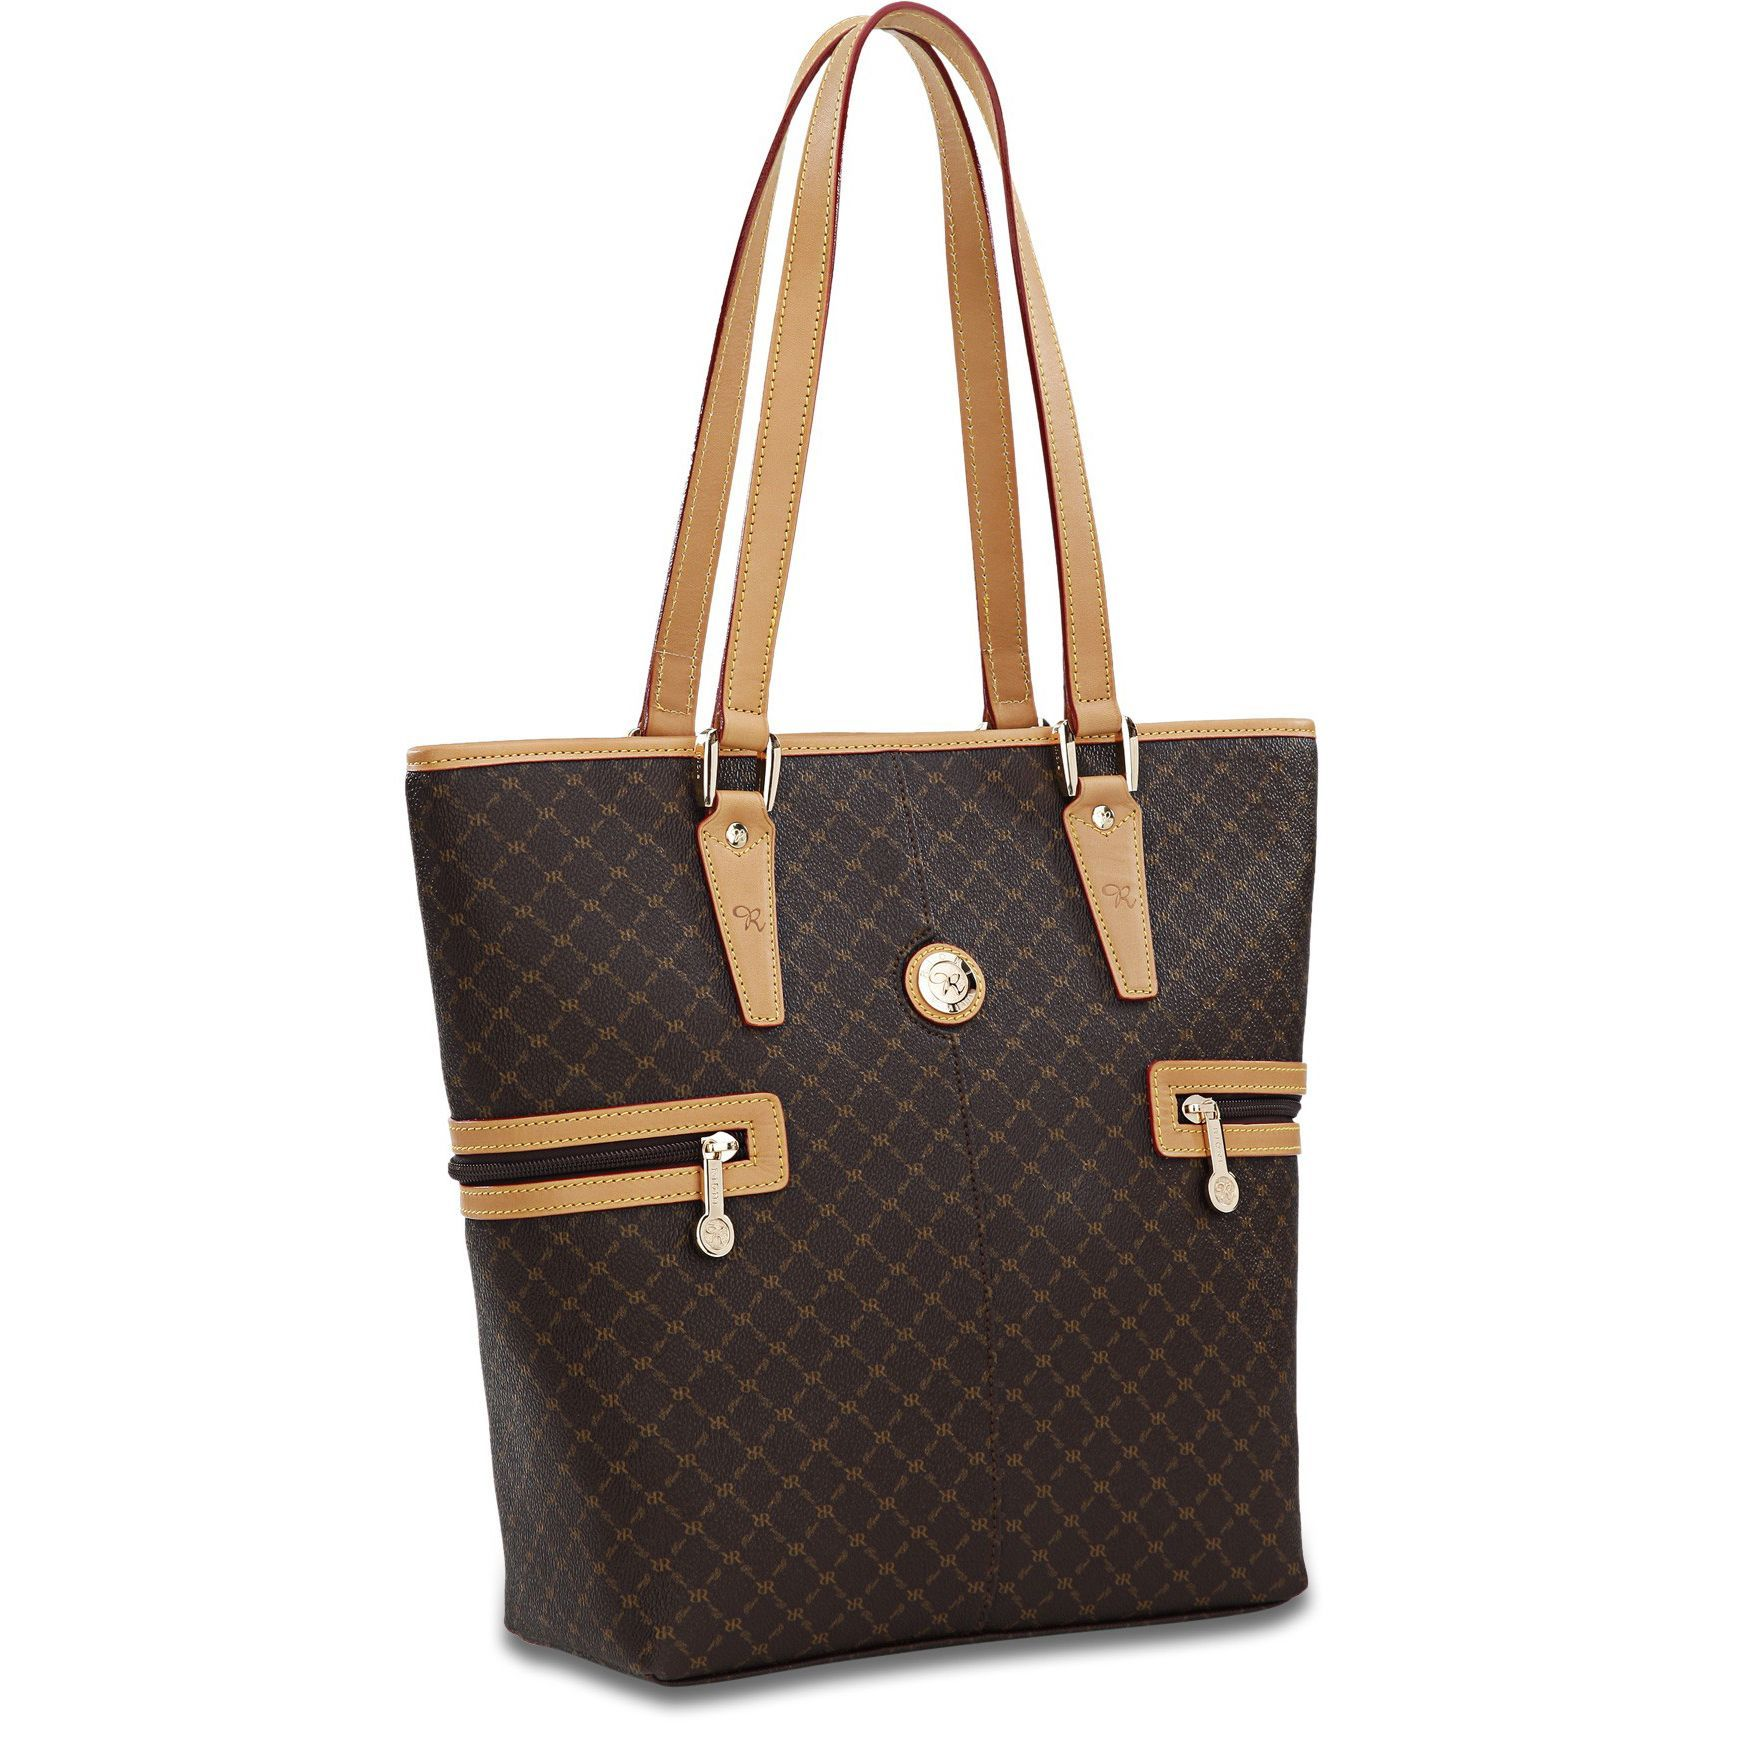 Throw all your goodies into this adorable Rioni Signature tall shopper toteHandbag features gentle dark gold 'RR' Rioni monogram print on a solid brown Italian canvas bodyBag is accented with Italian dual-strap leather handles and trim